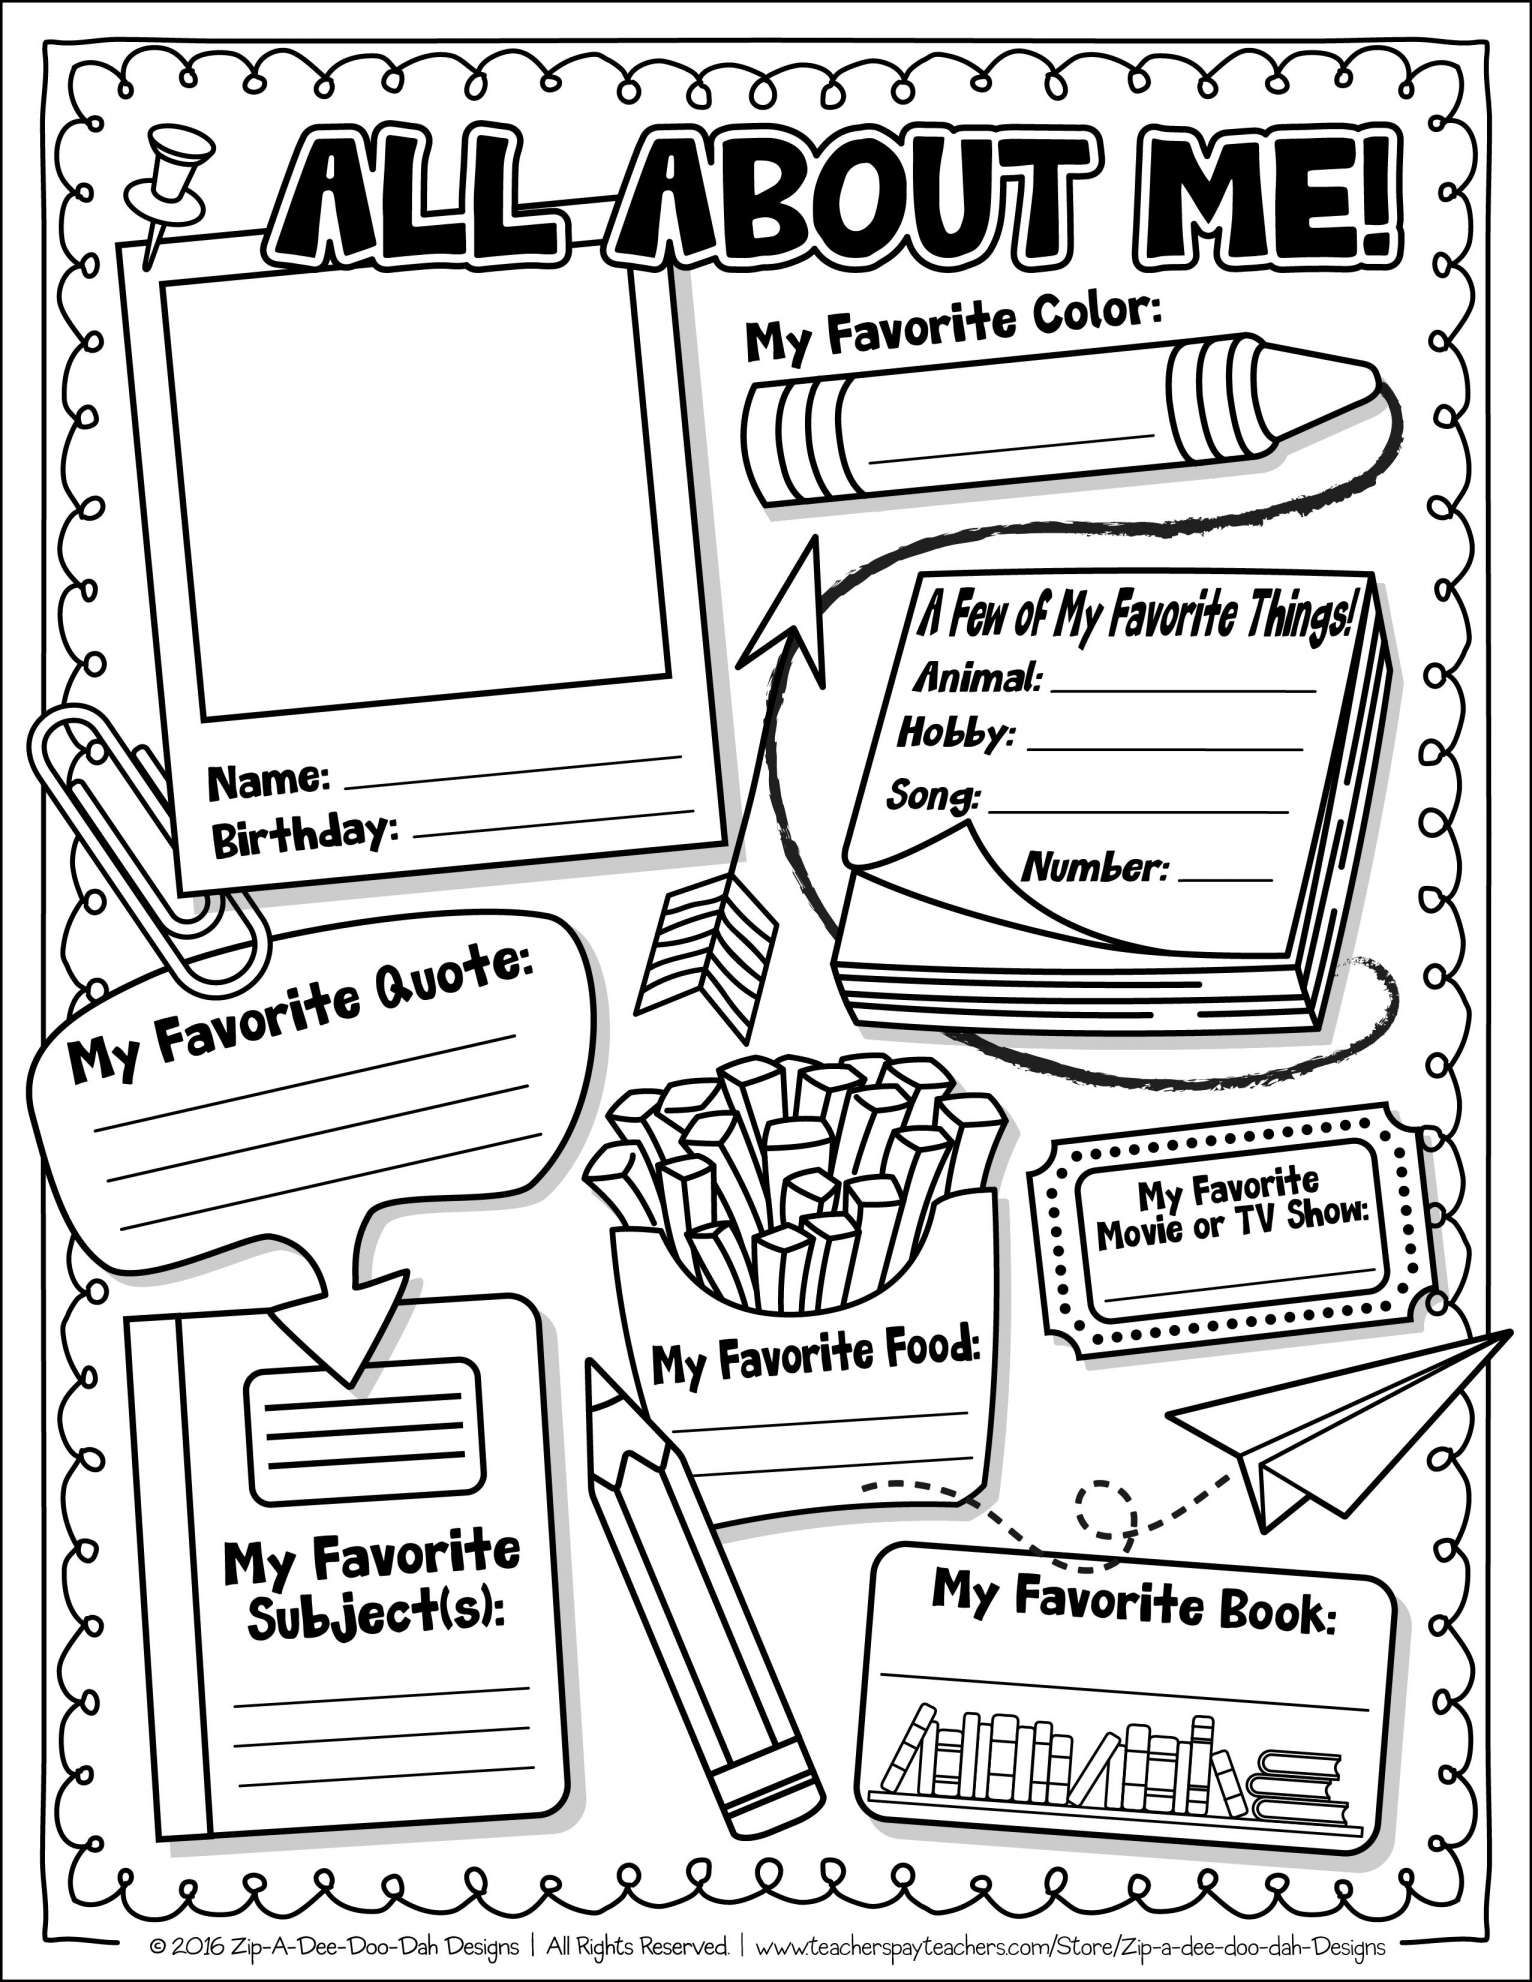 7 All About Me Worksheet 4th Grade Free